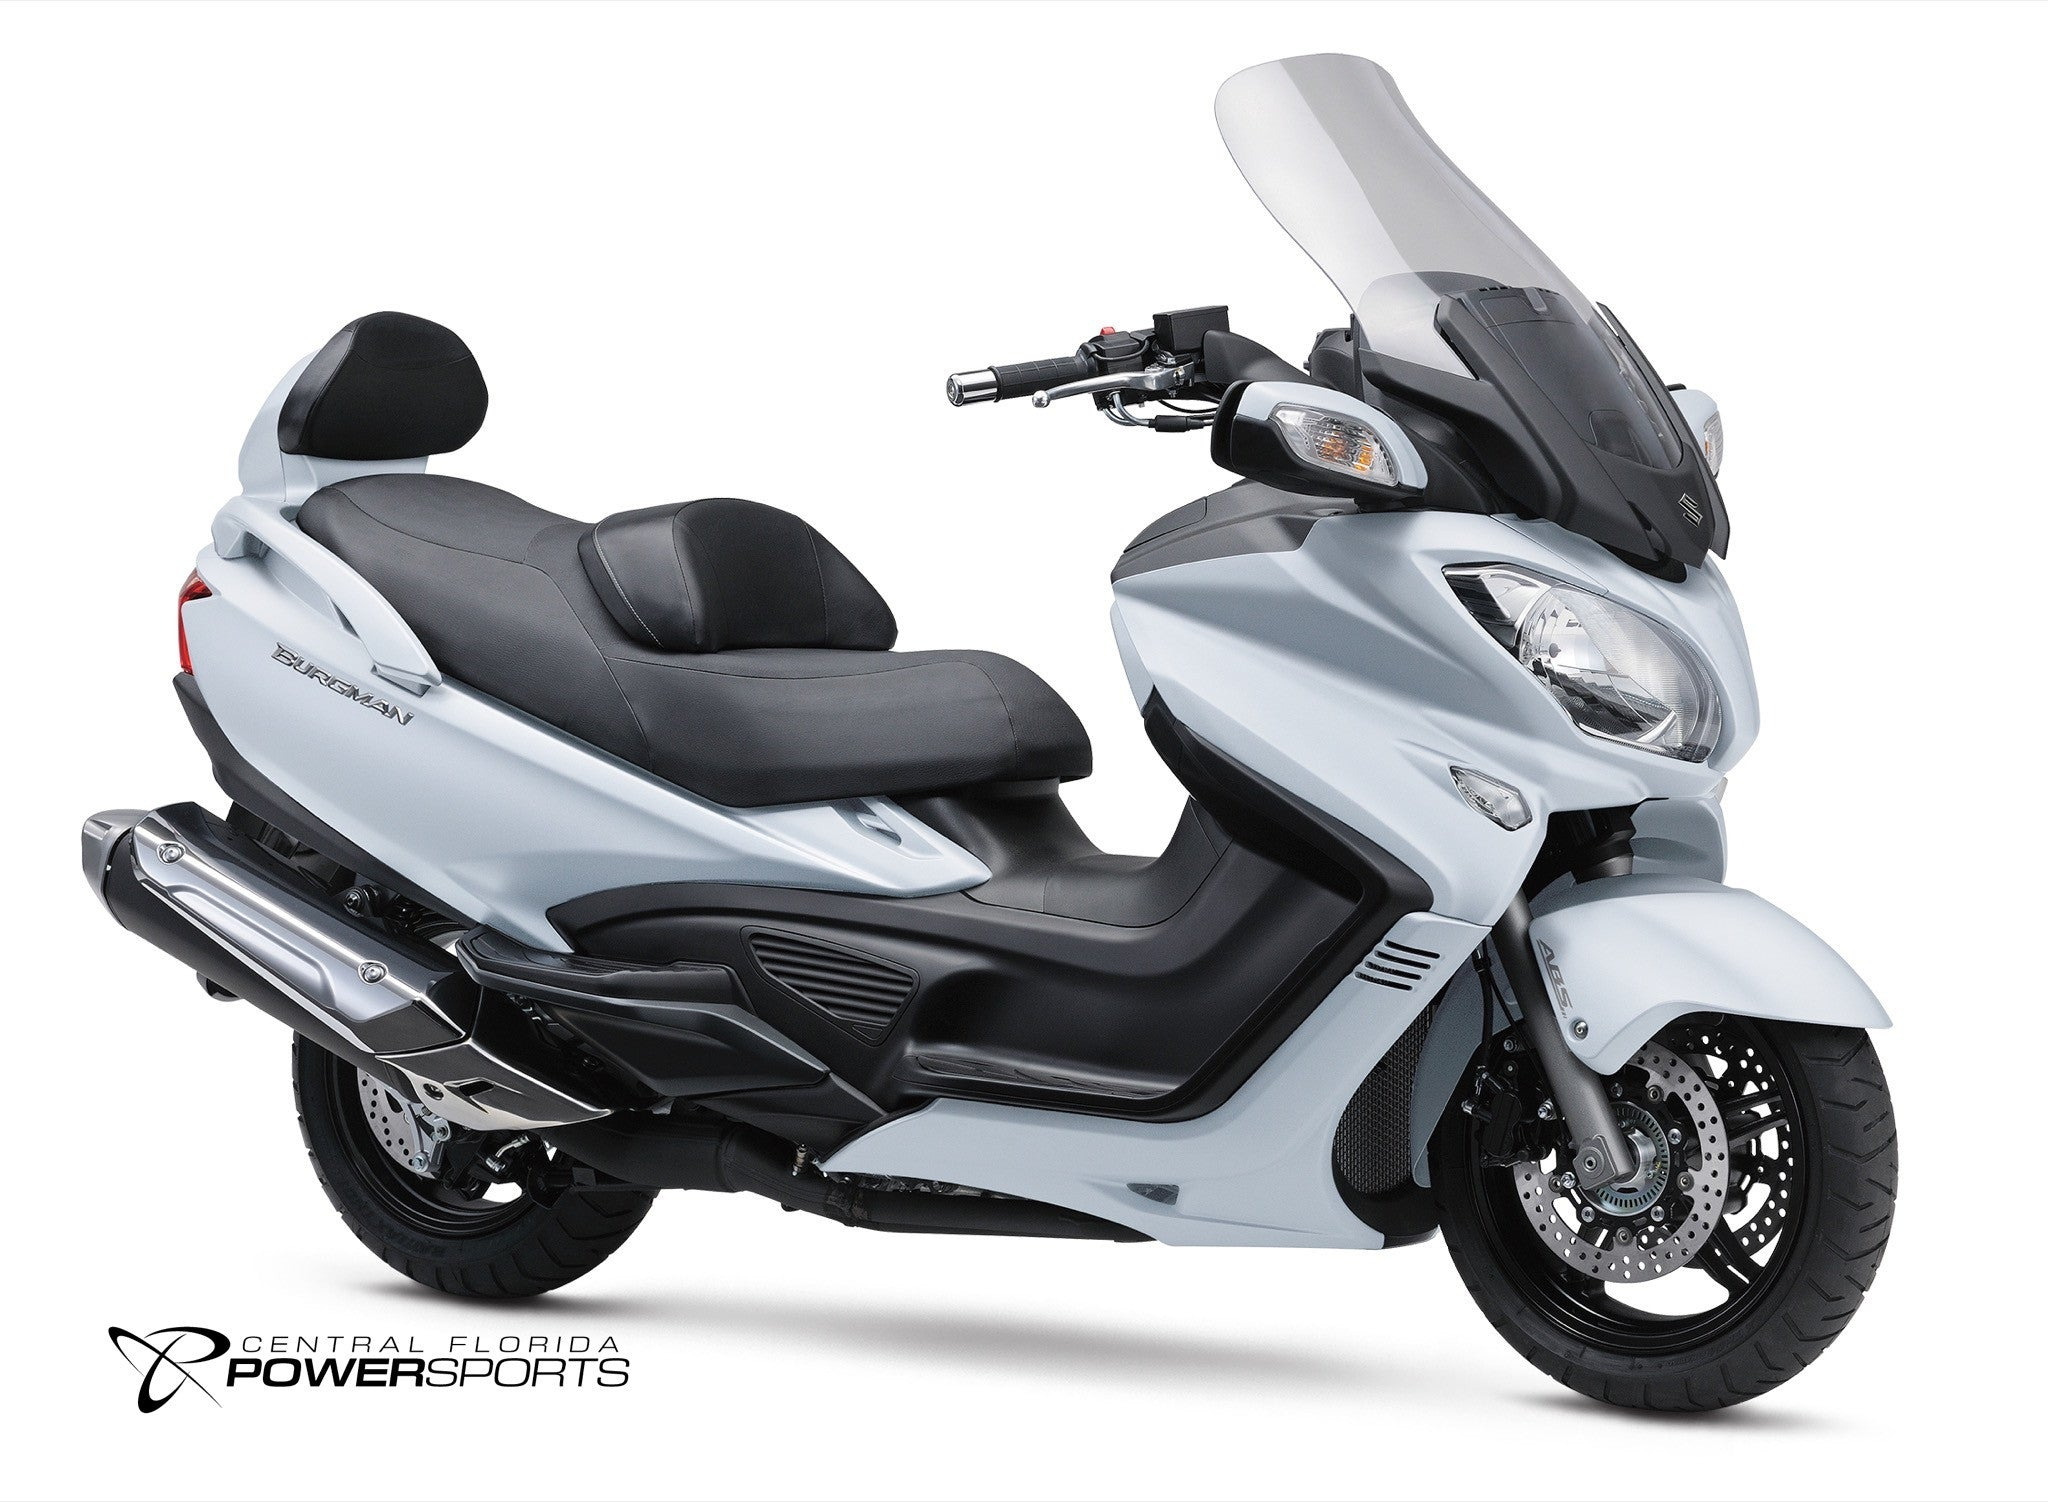 2017 suzuki burgman 650 abs executive scooter for sale central florida powersports. Black Bedroom Furniture Sets. Home Design Ideas